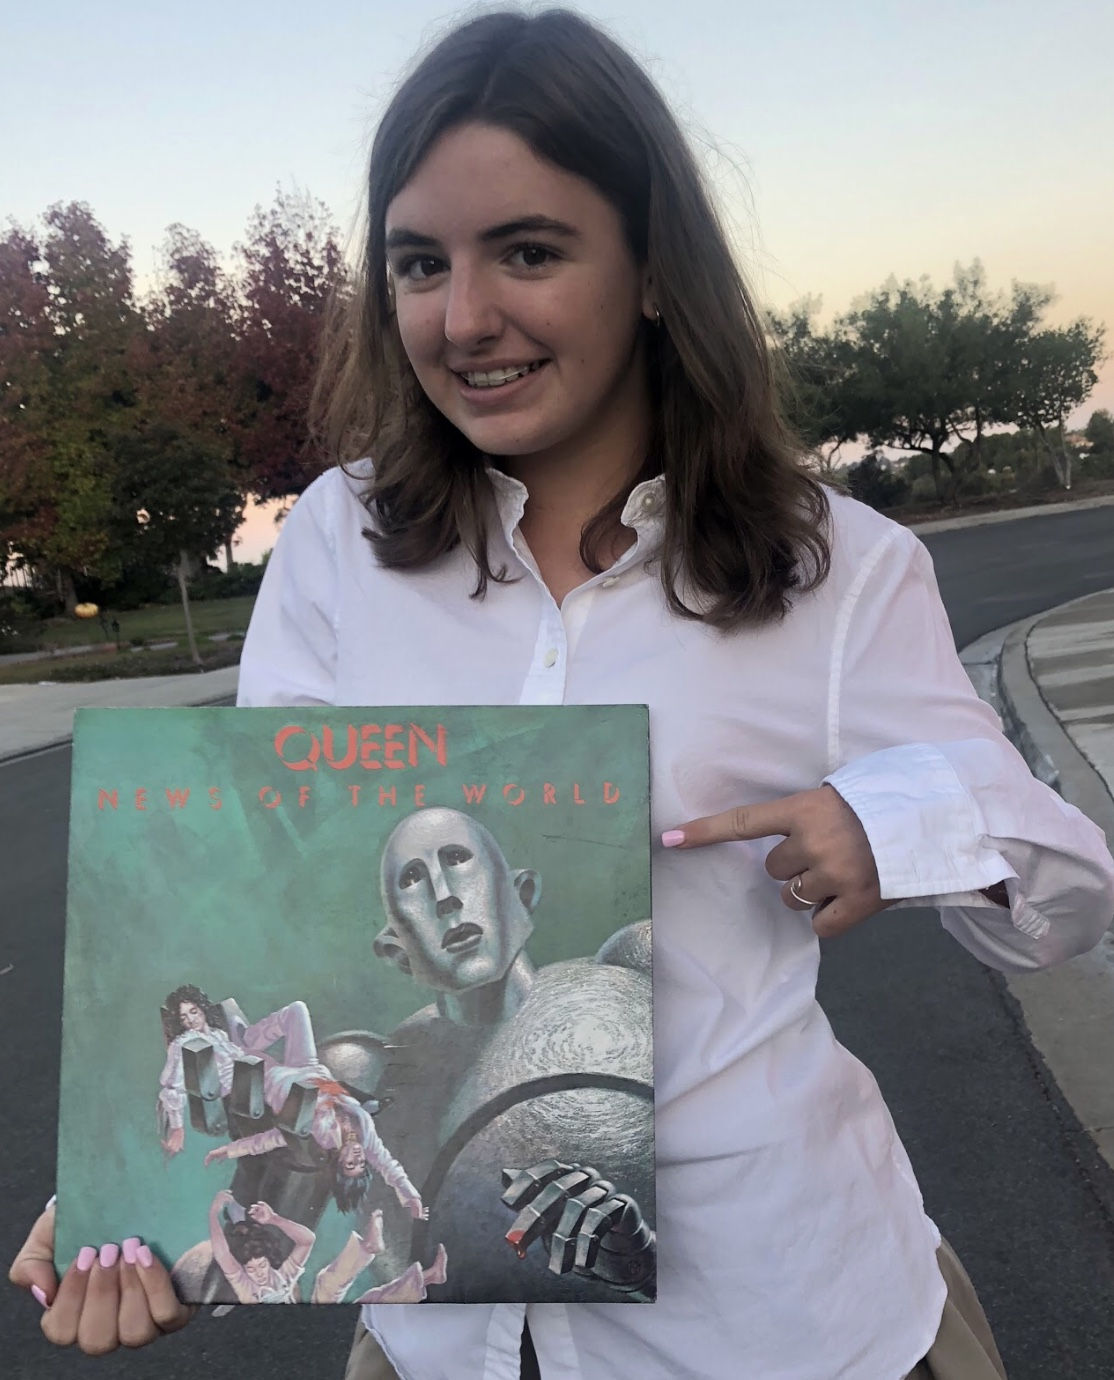 Cathedral Catholic High School student Megan Garvey '22 holds a Queen record as she prepares to view the upcoming film, Bohemian Rhapsody, which describes Mr. Freddie Mercury's life and his journey while leading Queen on its path to fame.